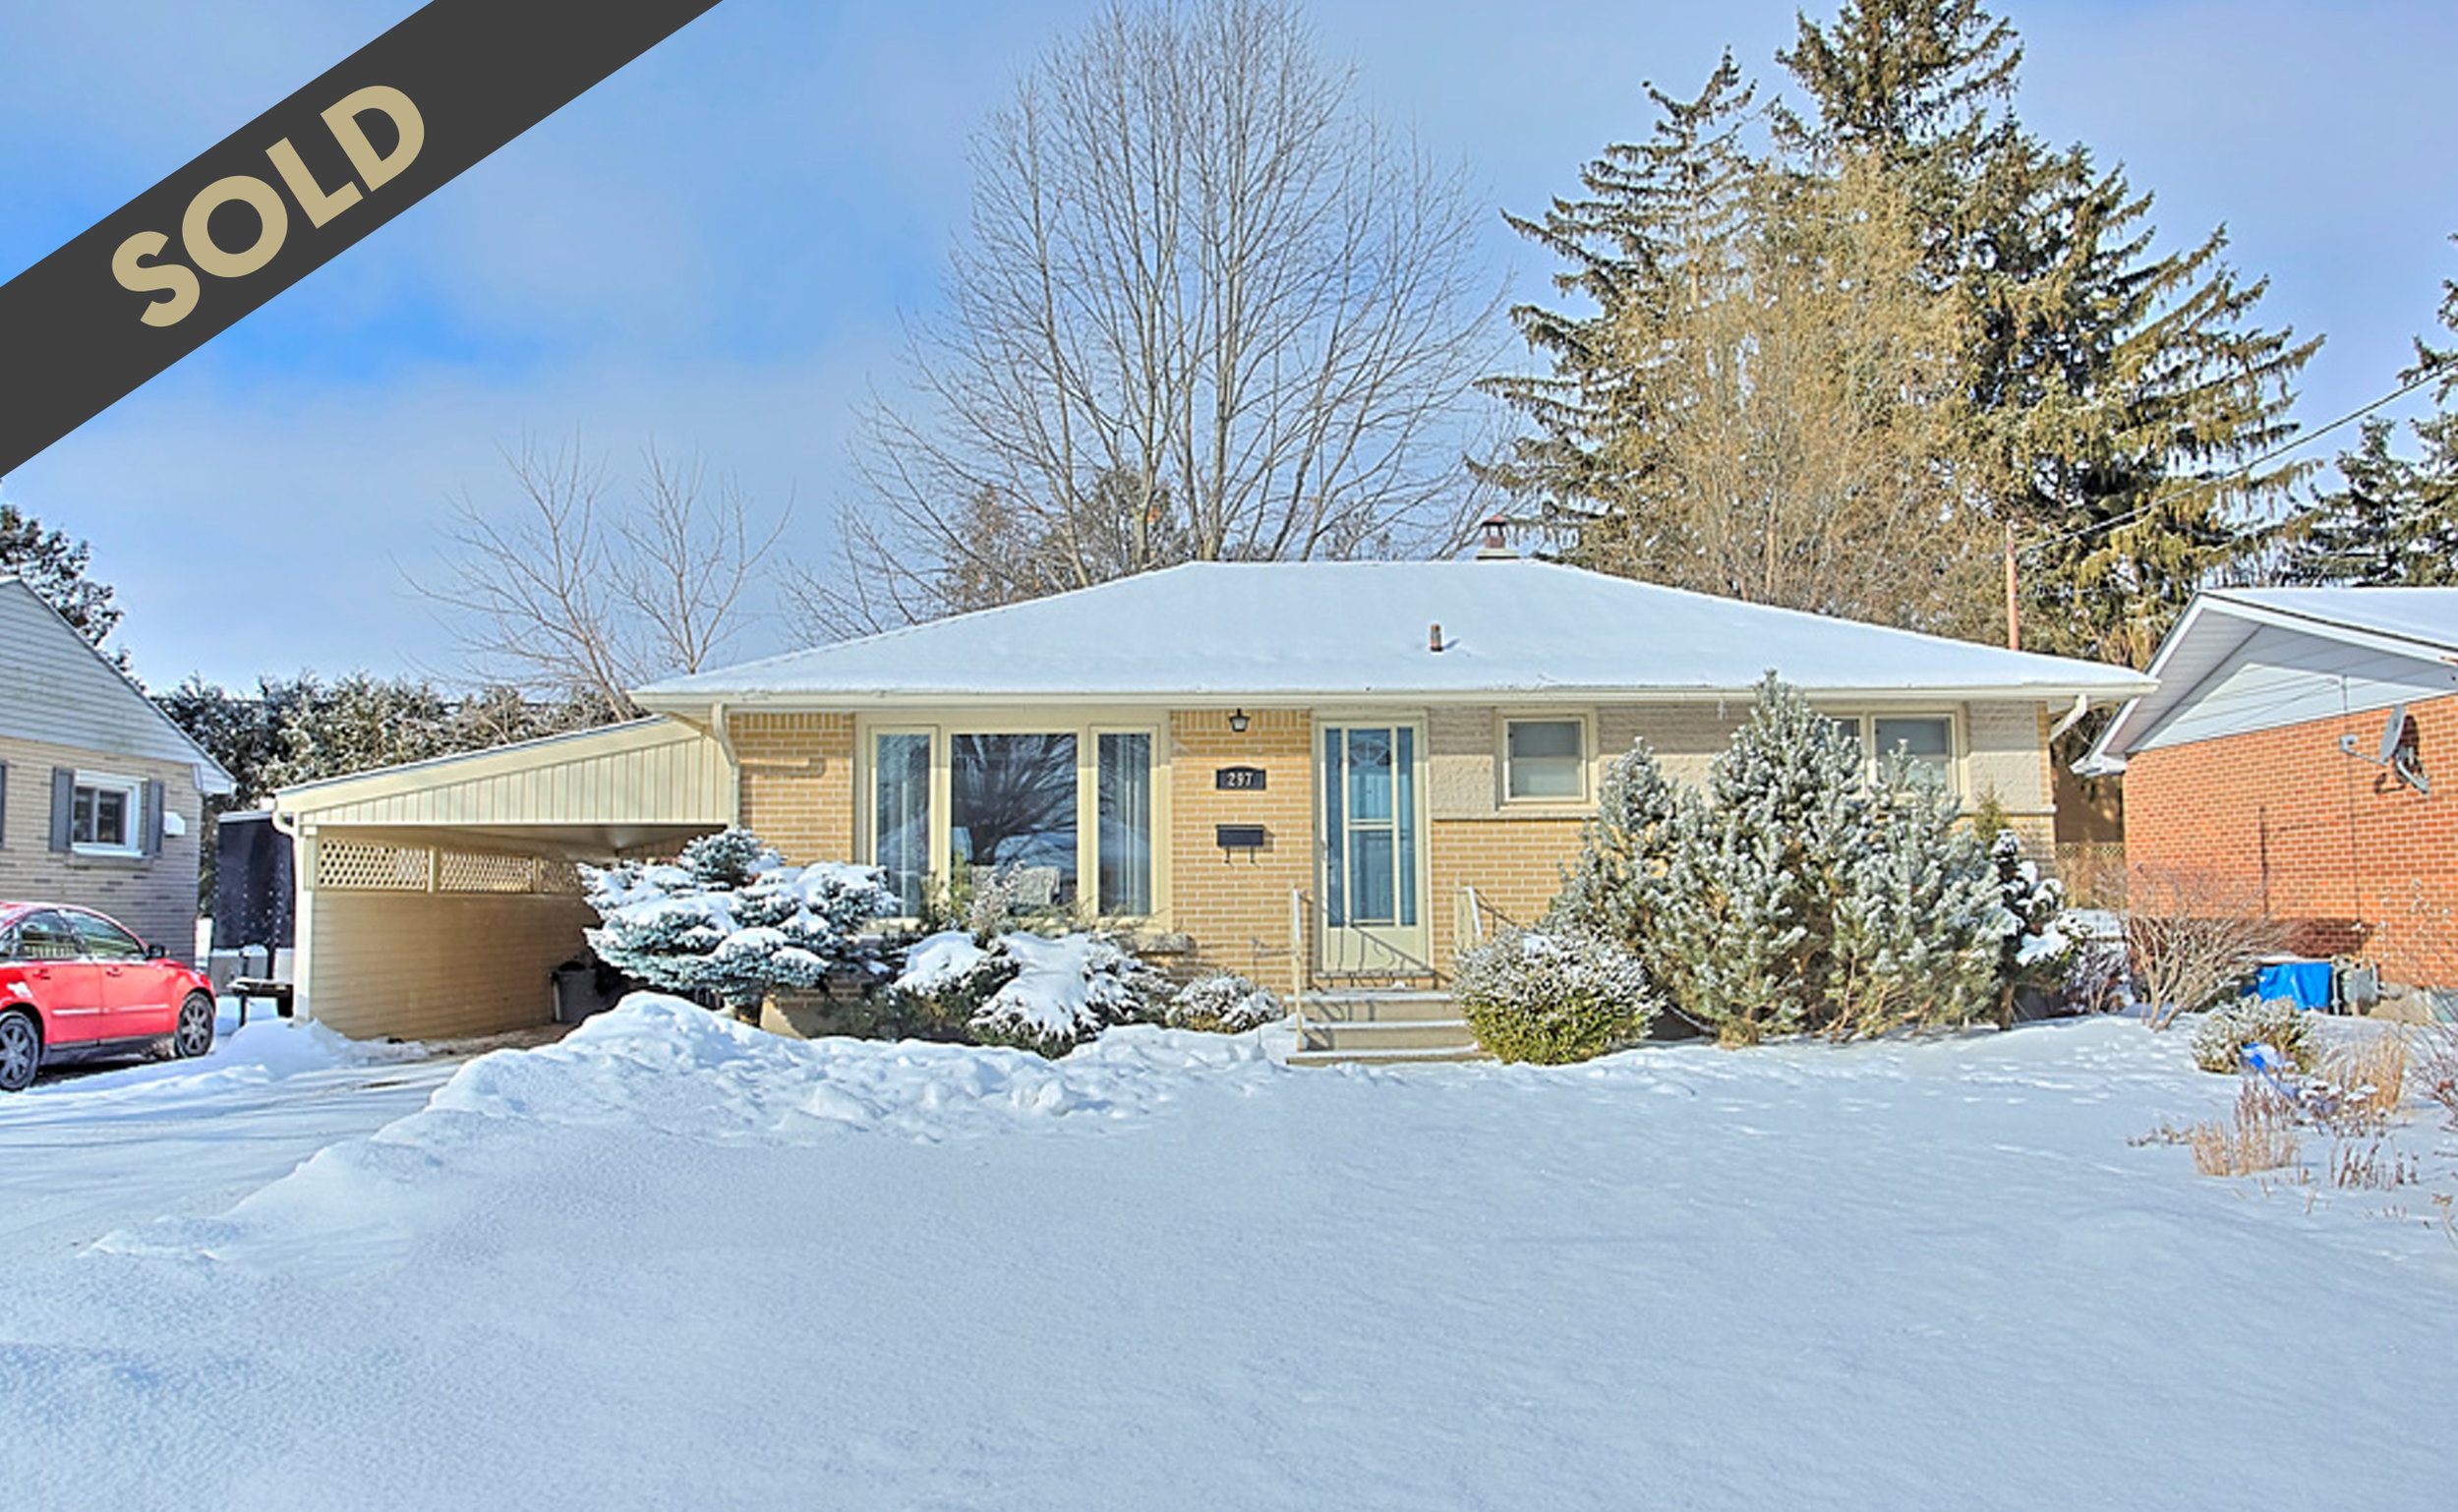 - 297 Willowgrove Crescent, WoodstockSoldAsking $278,5002 beds/1 bath